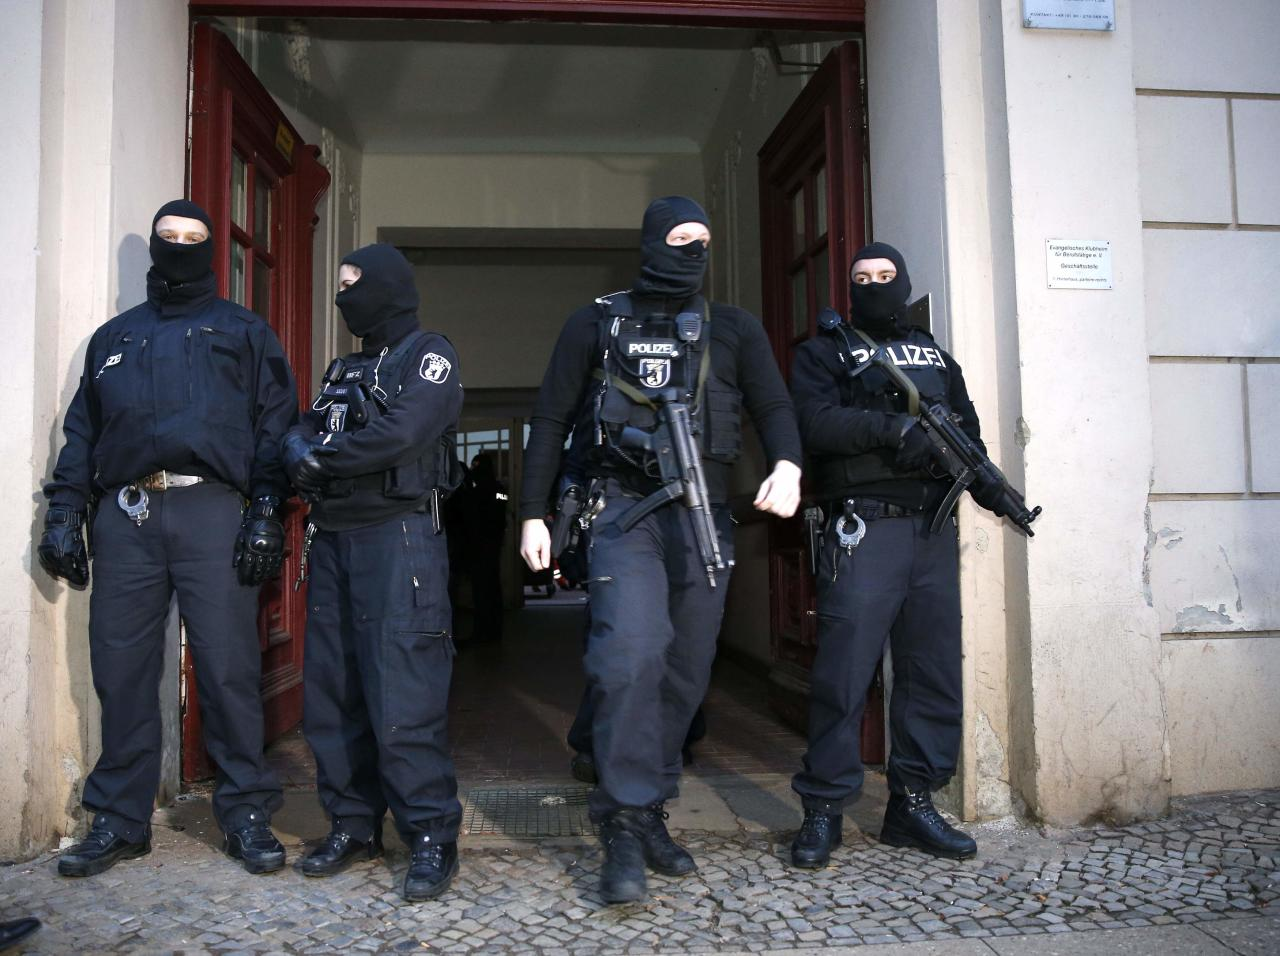 German special police units stand in front of an entrance of an apartment building in the Wedding district in Berlin January 16, 2015. Around 250 policemen took part in the raid and arrested two suspected Islamists, police said. REUTERS/Fabrizio Bensch (GERMANY - Tags: CIVIL UNREST CRIME LAW POLITICS MILITARY TPX IMAGES OF THE DAY)